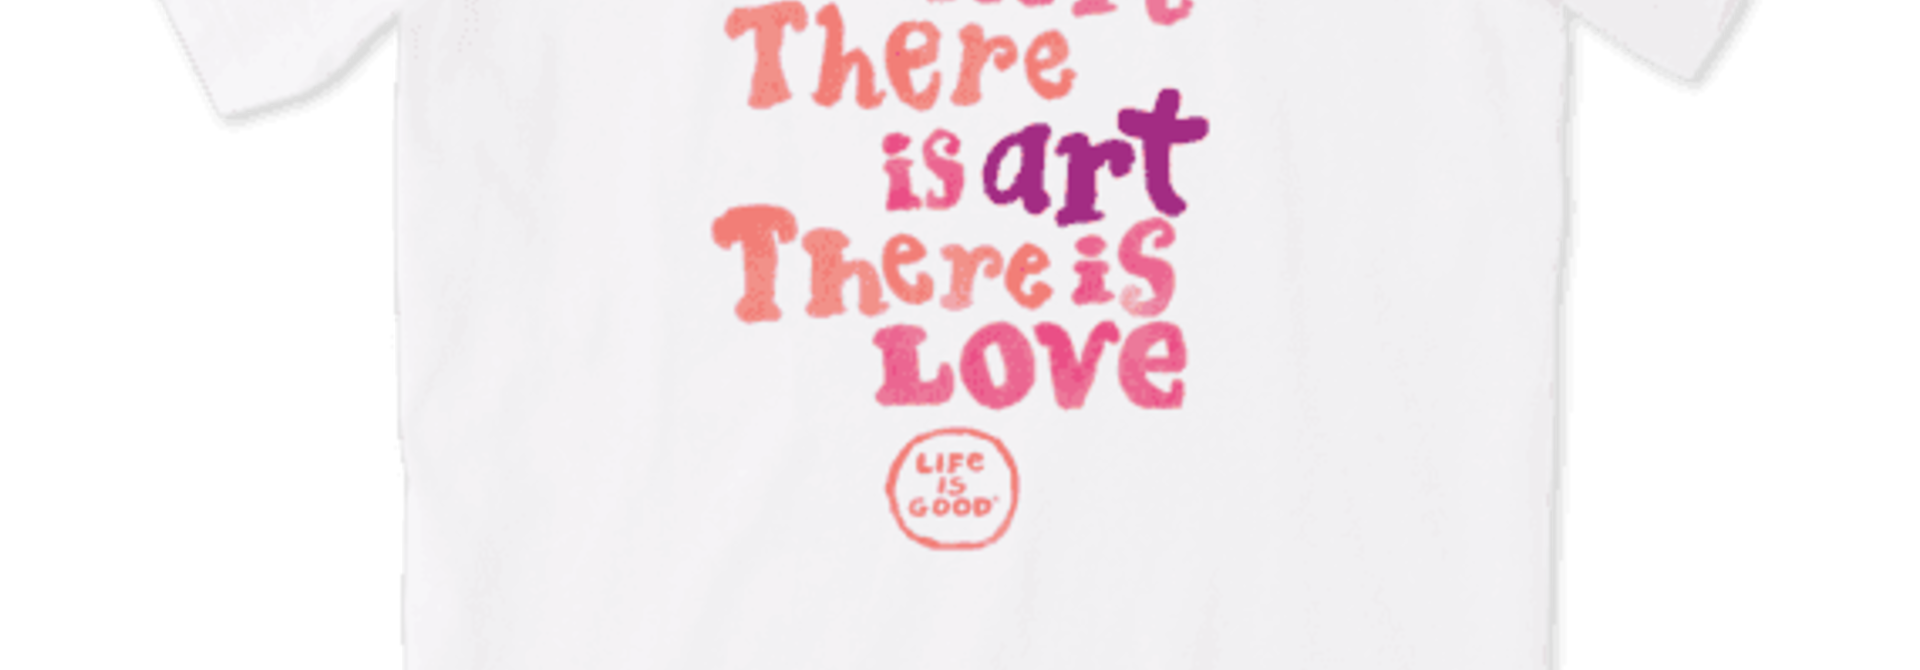 Where There is Art Love